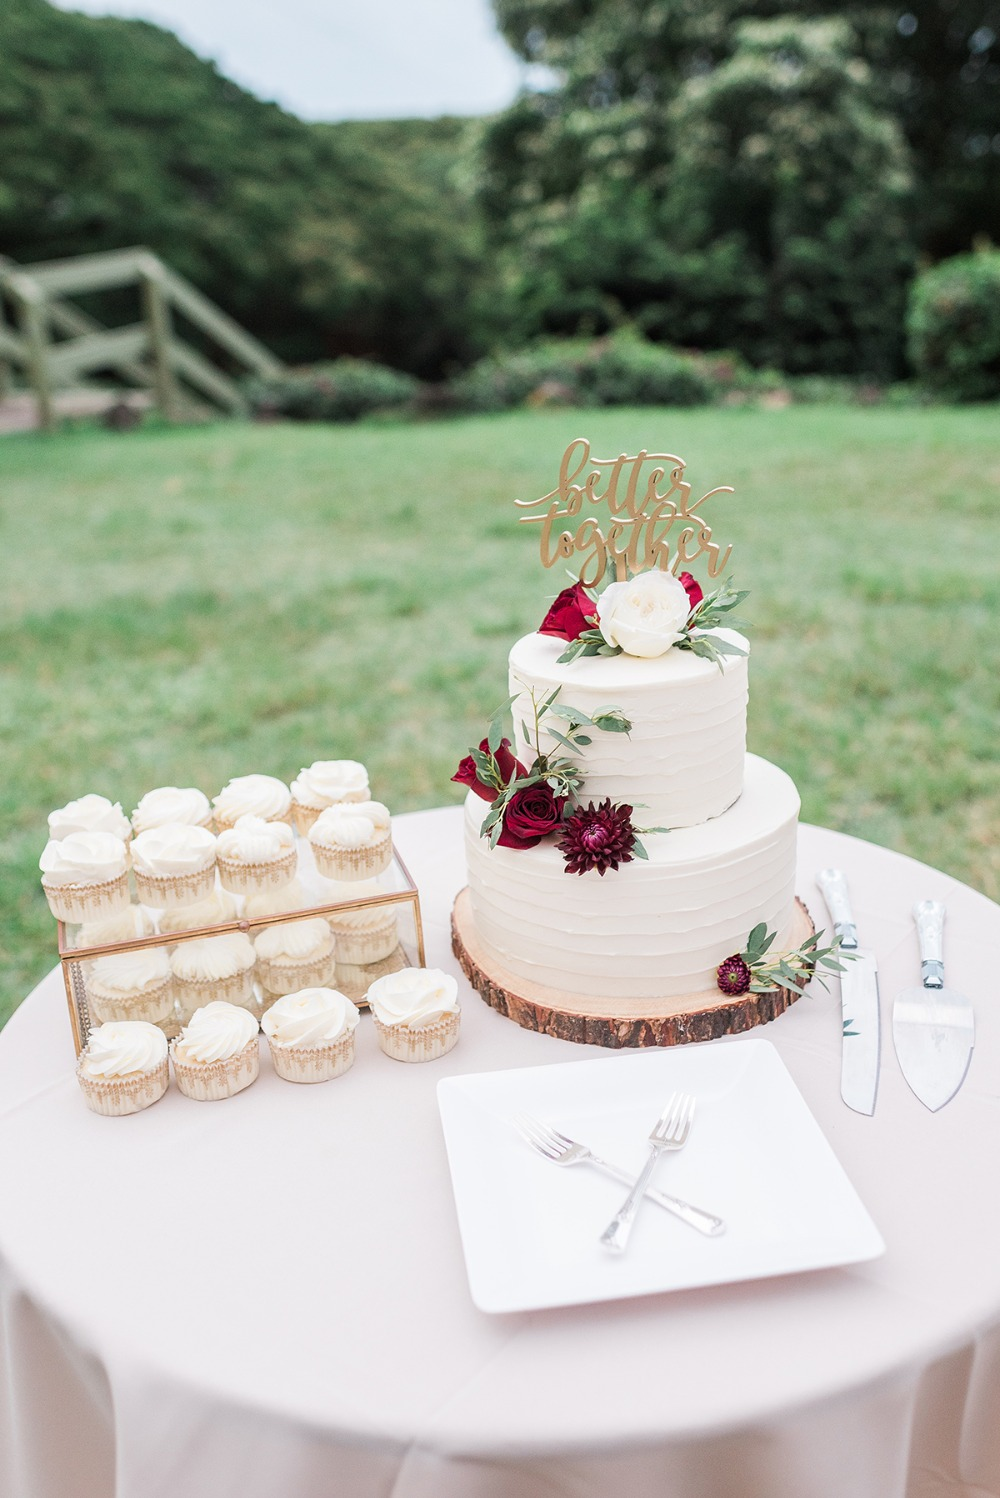 better together wedding cake topper and cupcakes